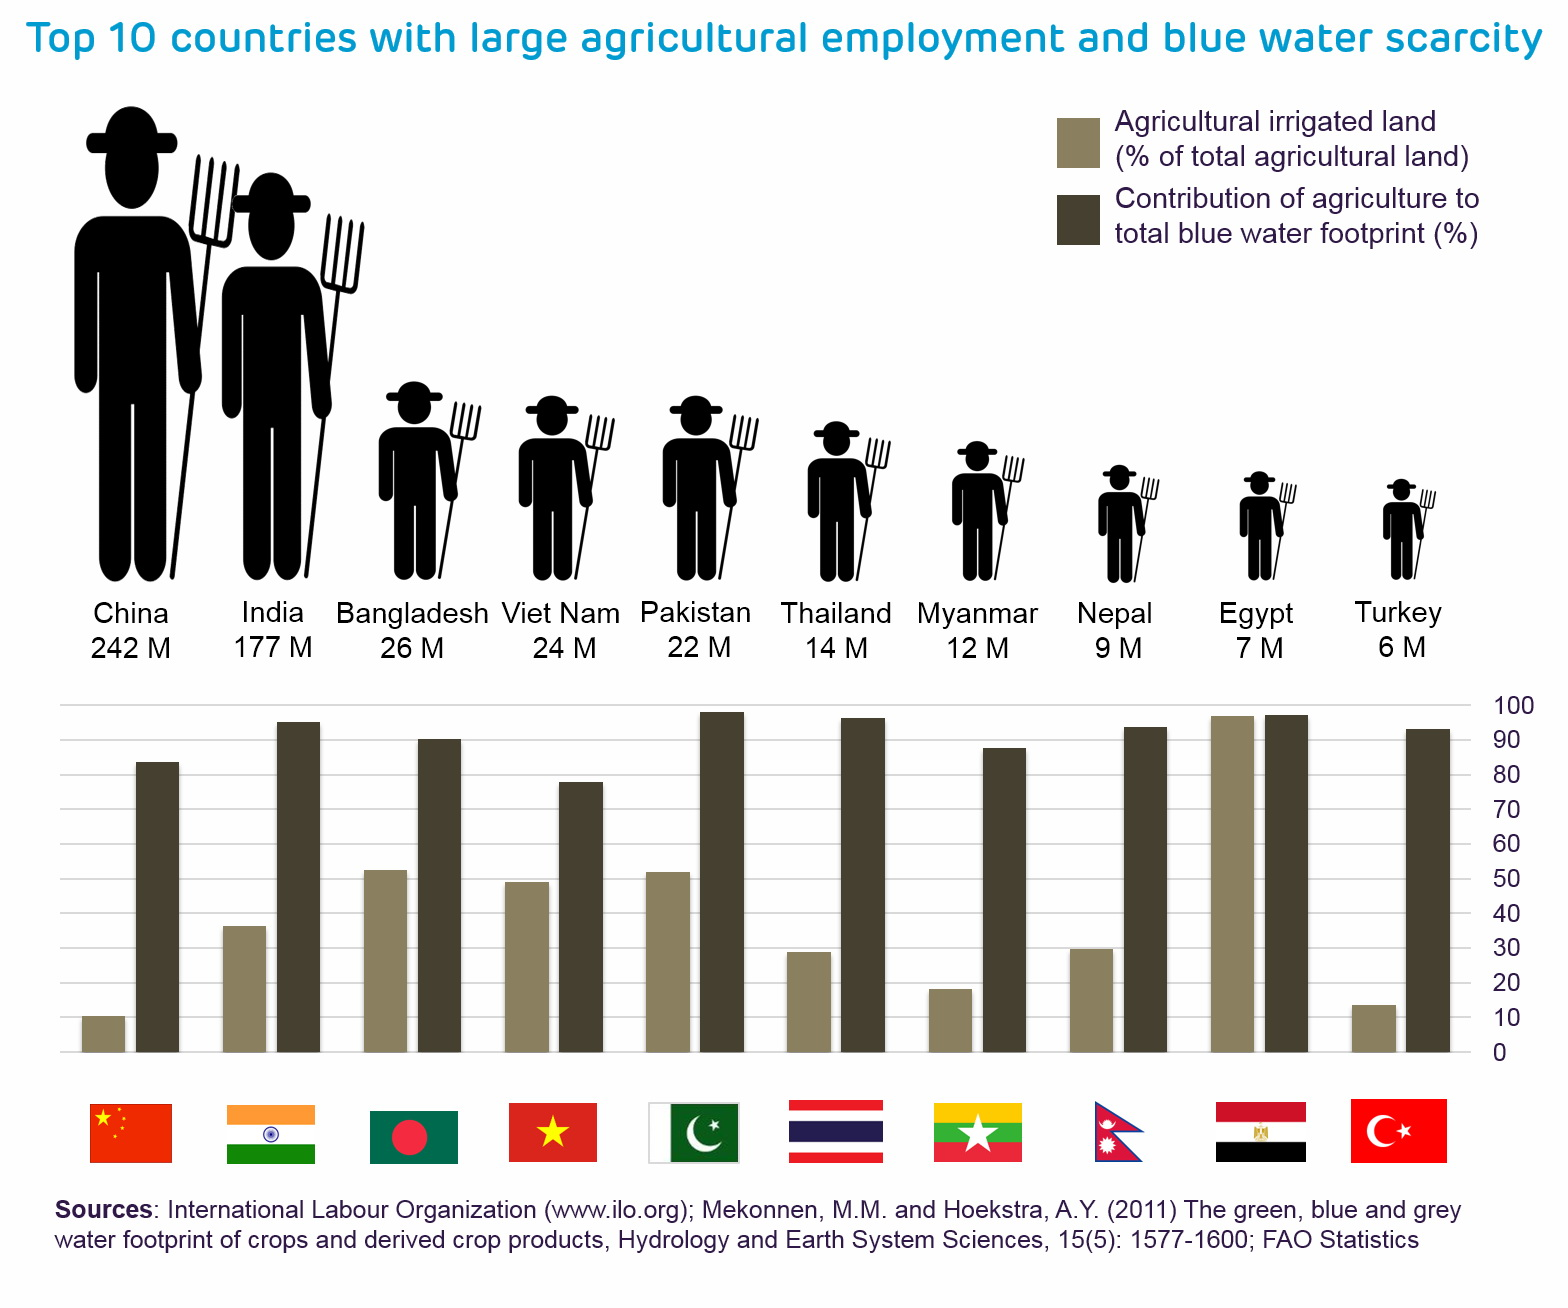 Top 10 countries with large agricultural employment and blue water scarcity